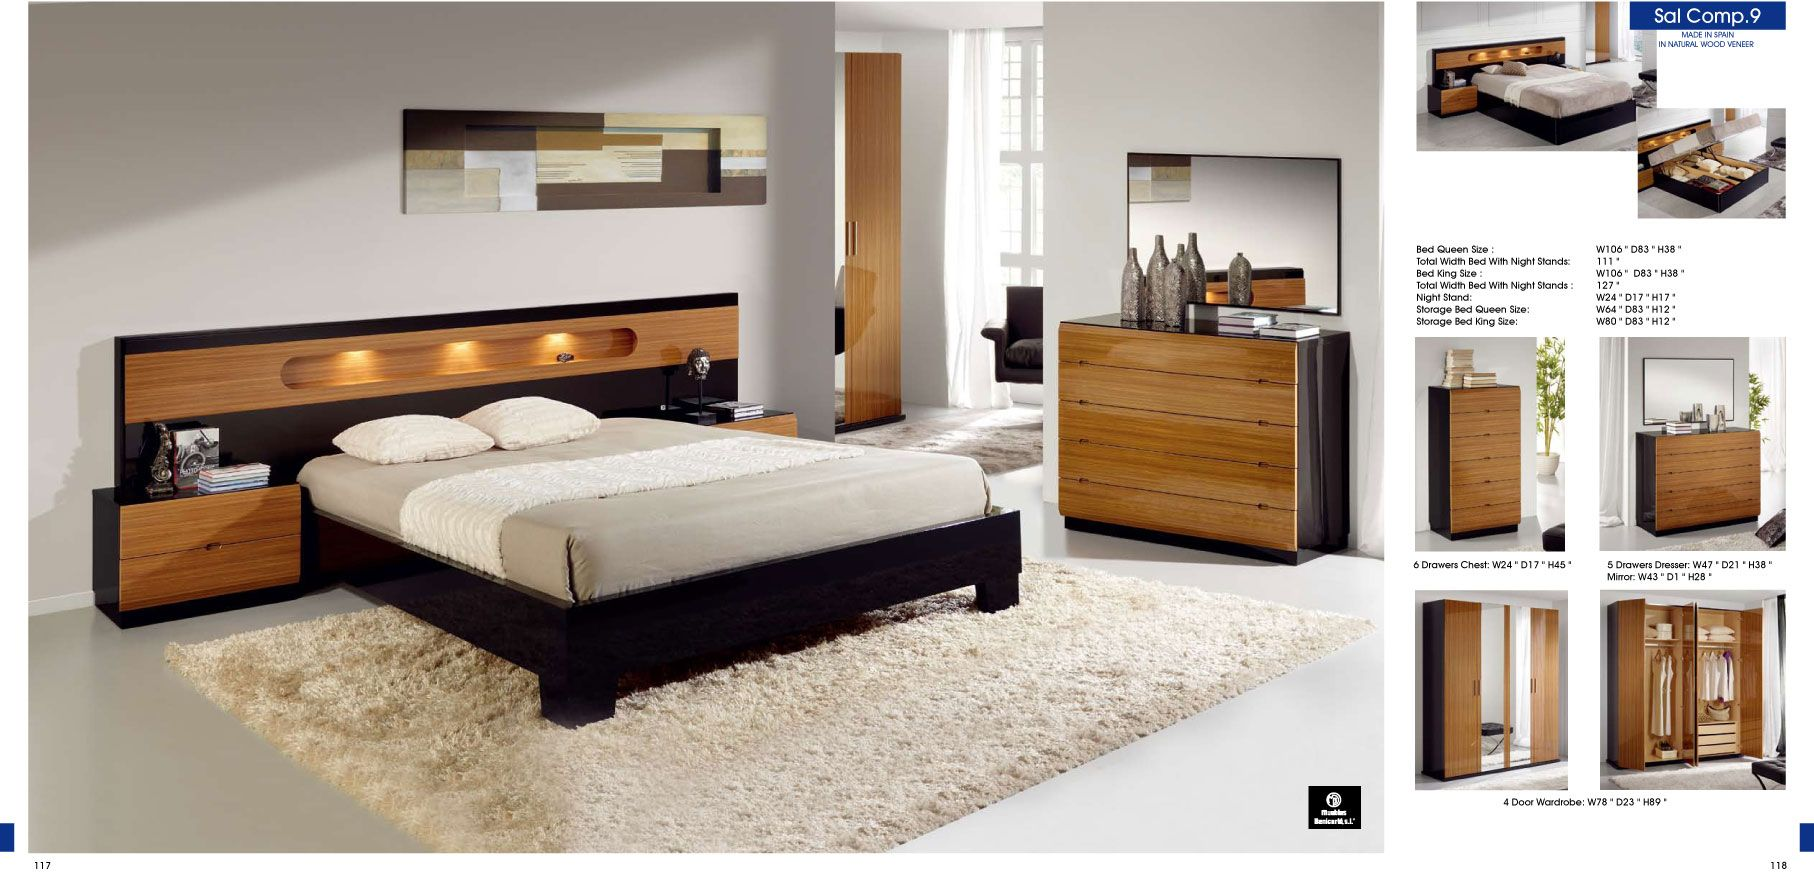 Elegant King Size Bedroom Sets 5 Ikea Catalog For Bedrooms Contemporary